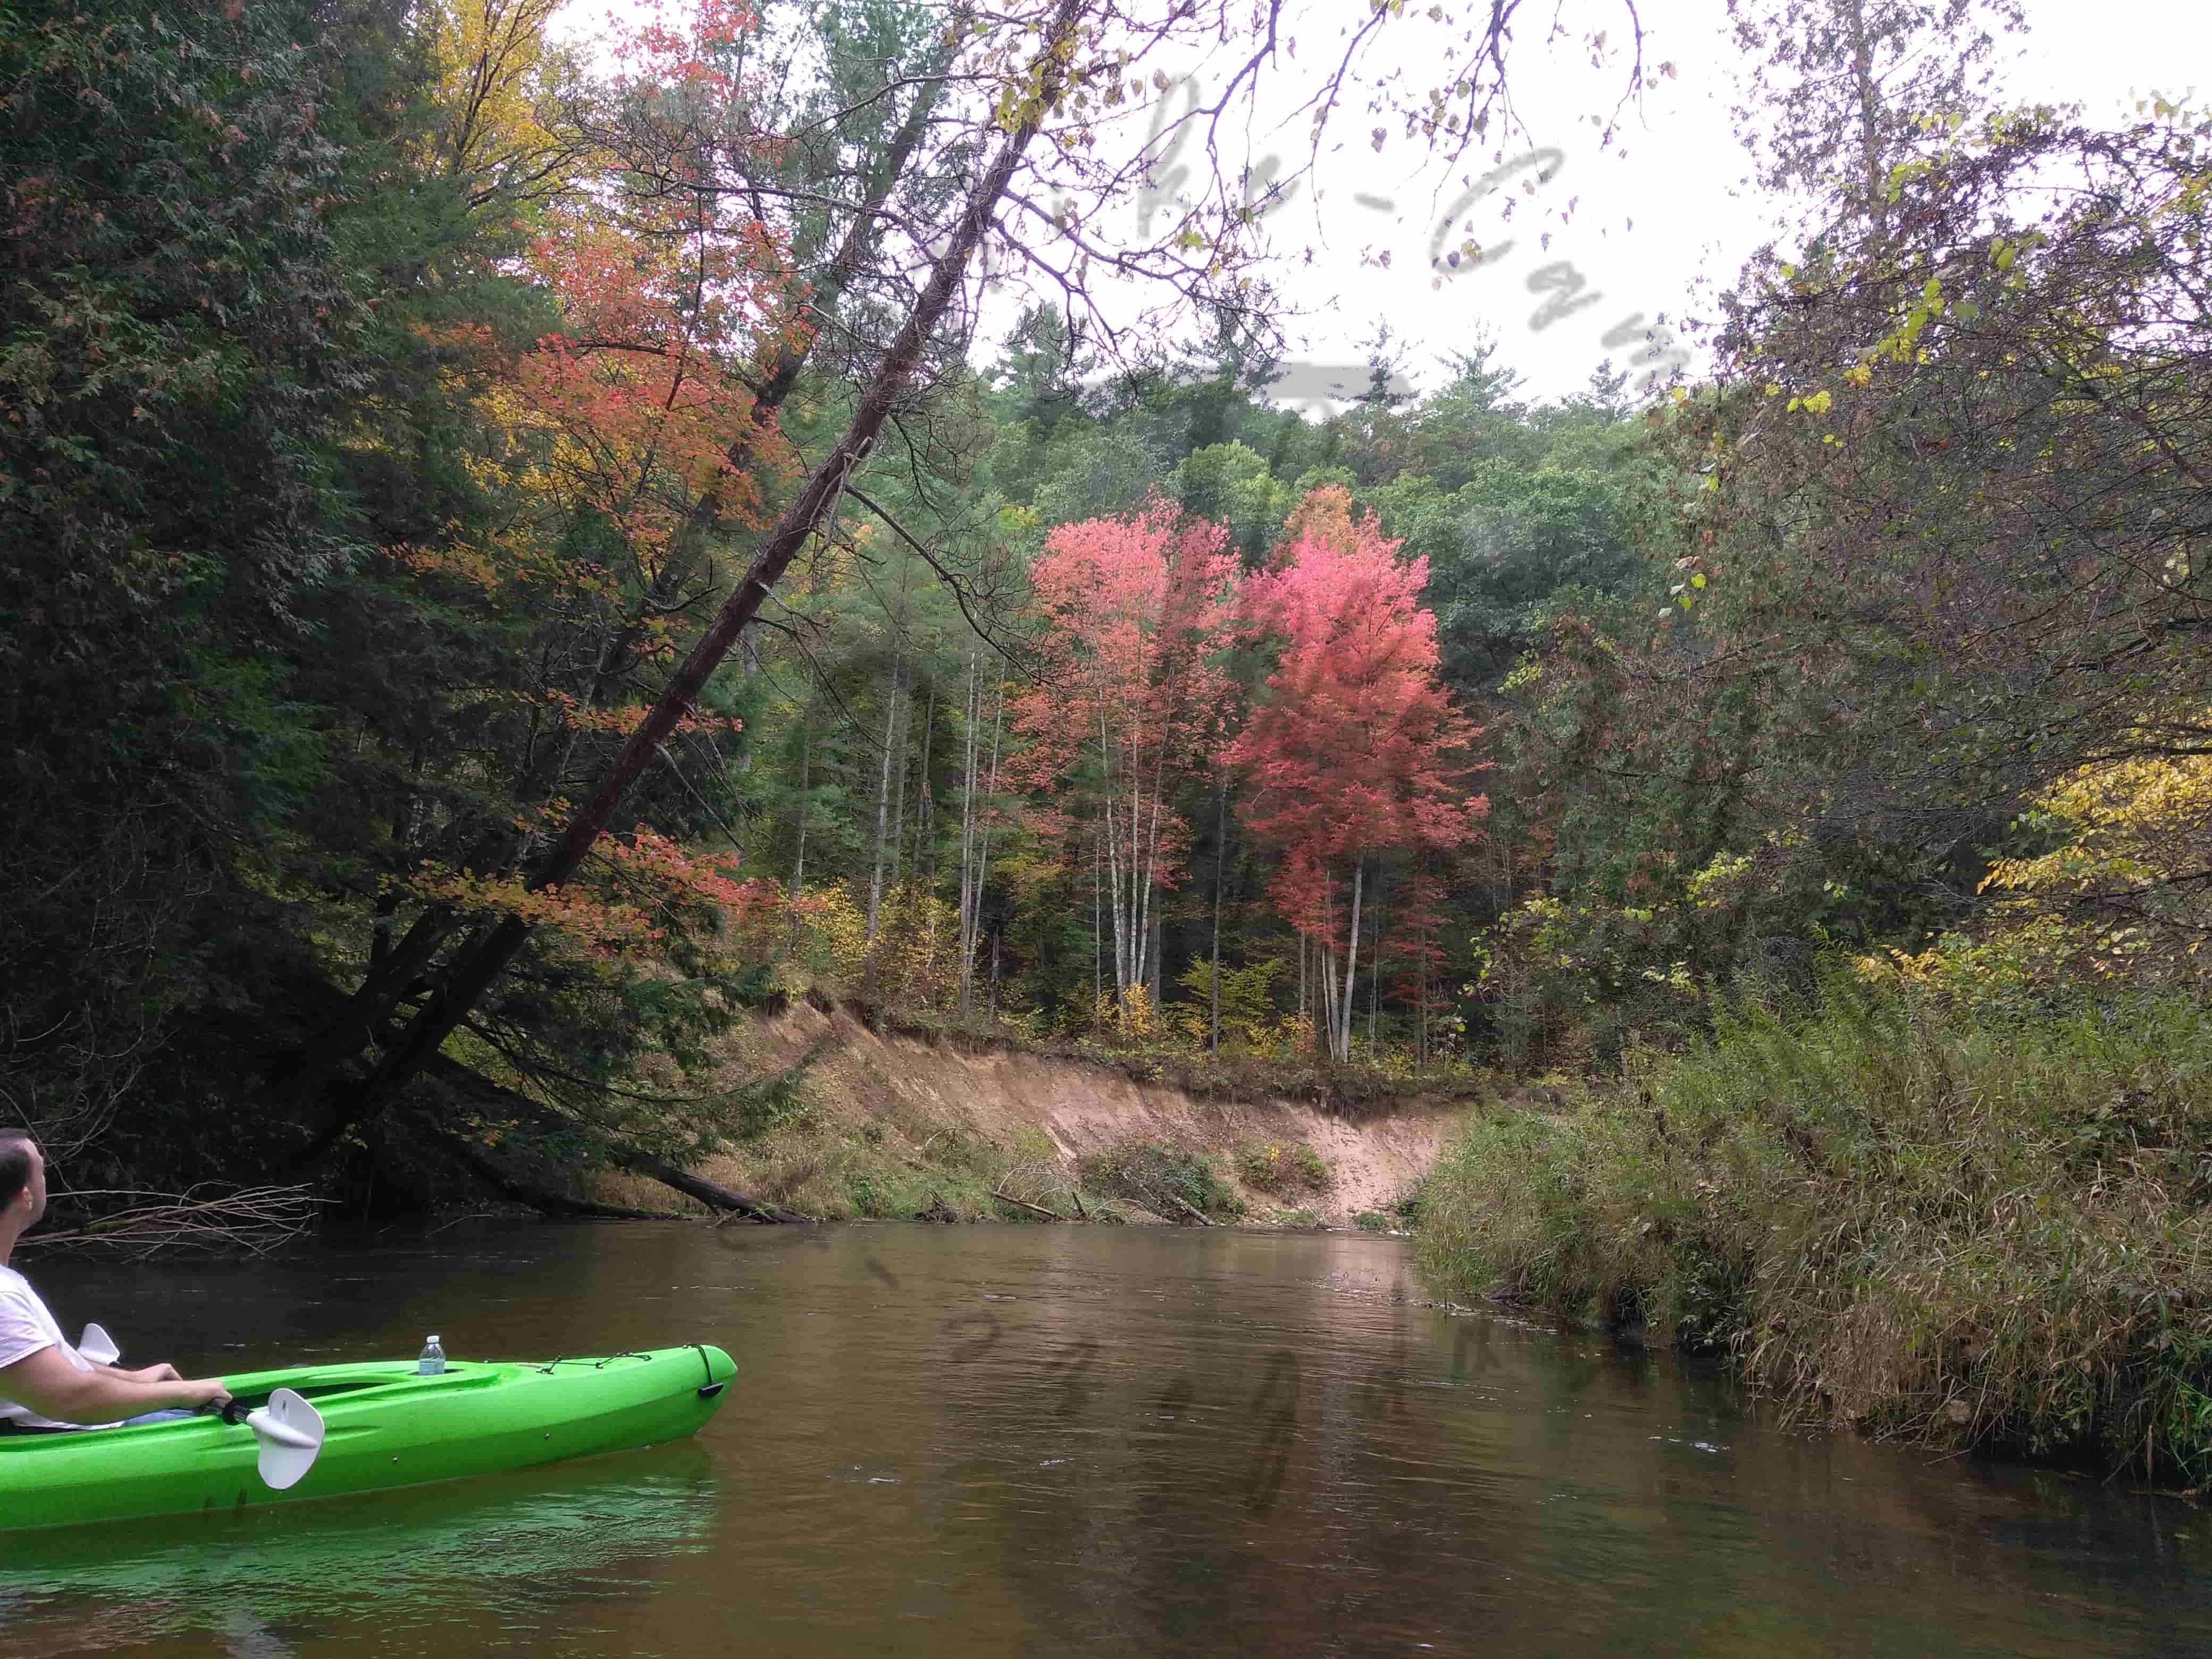 fall colors on trees while kayaking the pine river